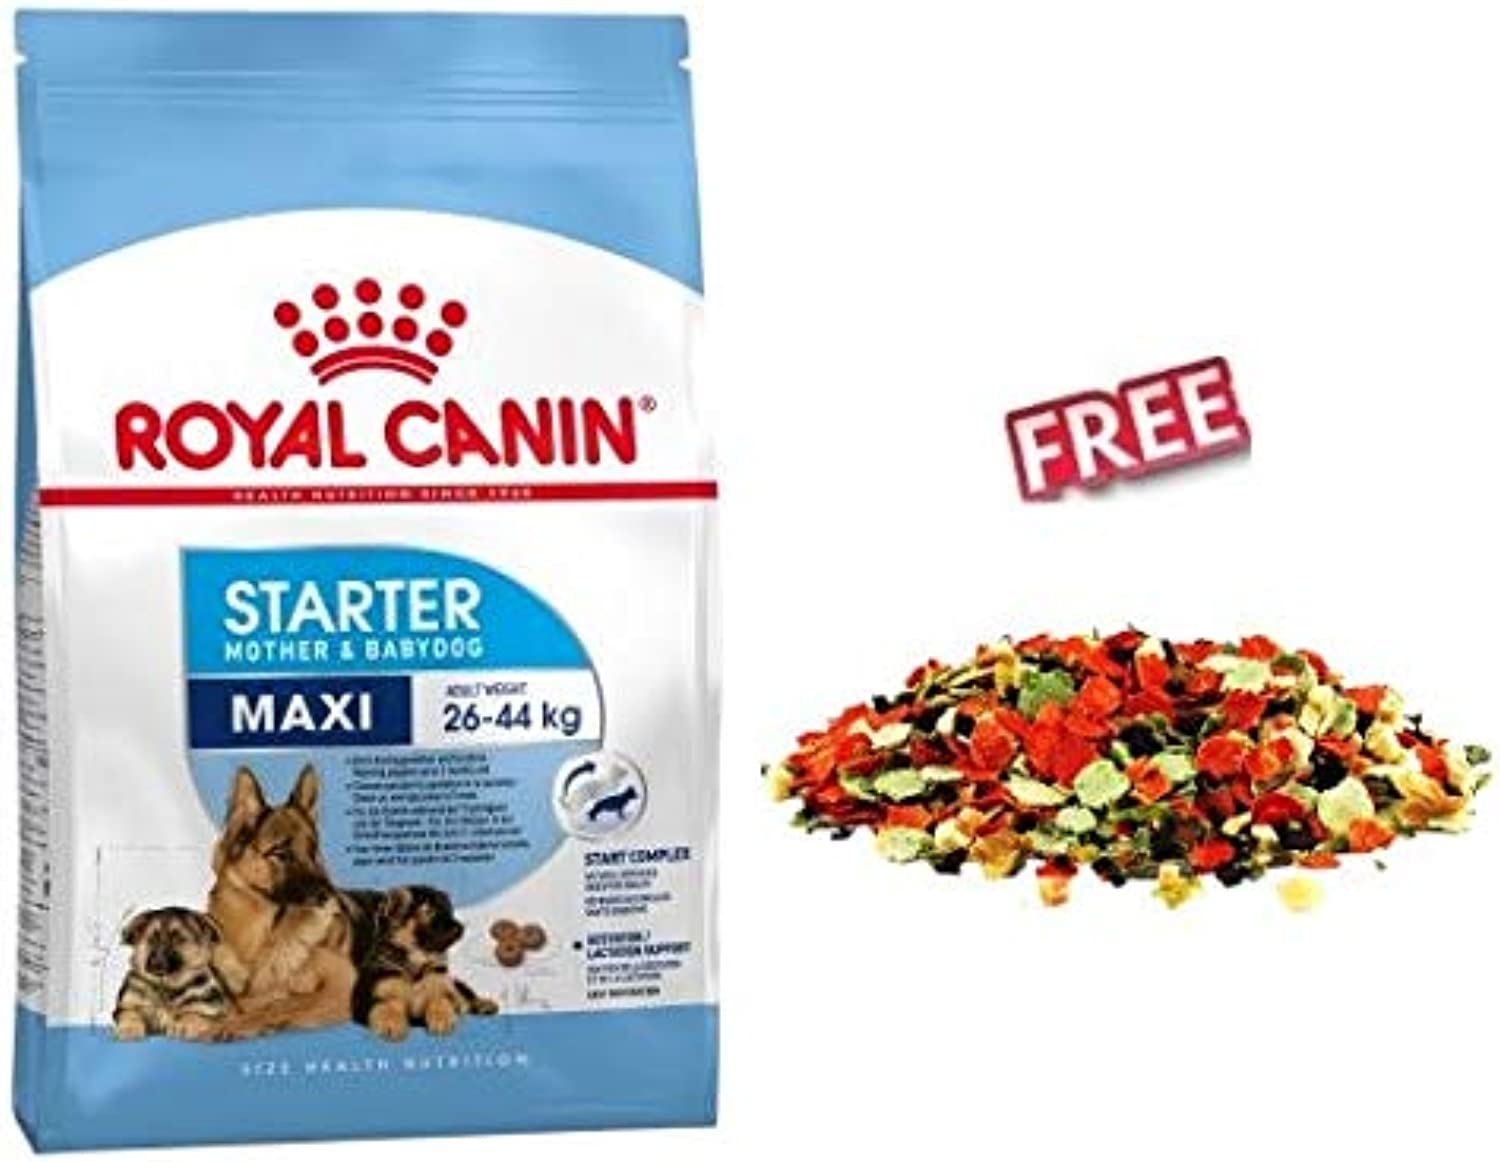 Royal Canin Maxi Starter Mother & Babydog 2 x 15kg for Pregnant & Lactating Dogs & Puppies in Weaning Phase up to 2 Months FREE Dibo Fruit & Vegetable Mix